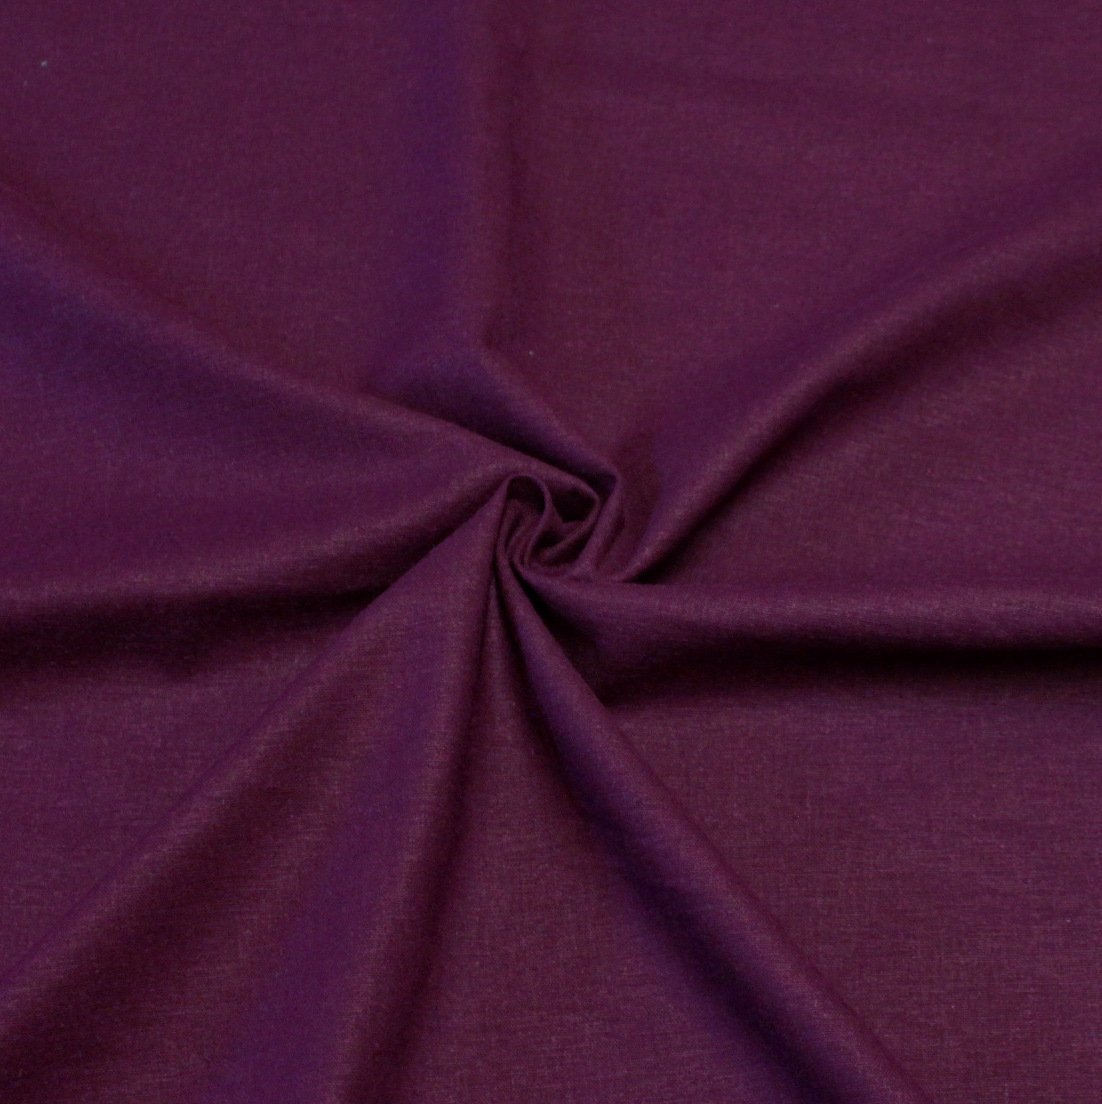 Bright Eggplant Medium Weight Stretch Linen - Raspberry Creek Fabrics